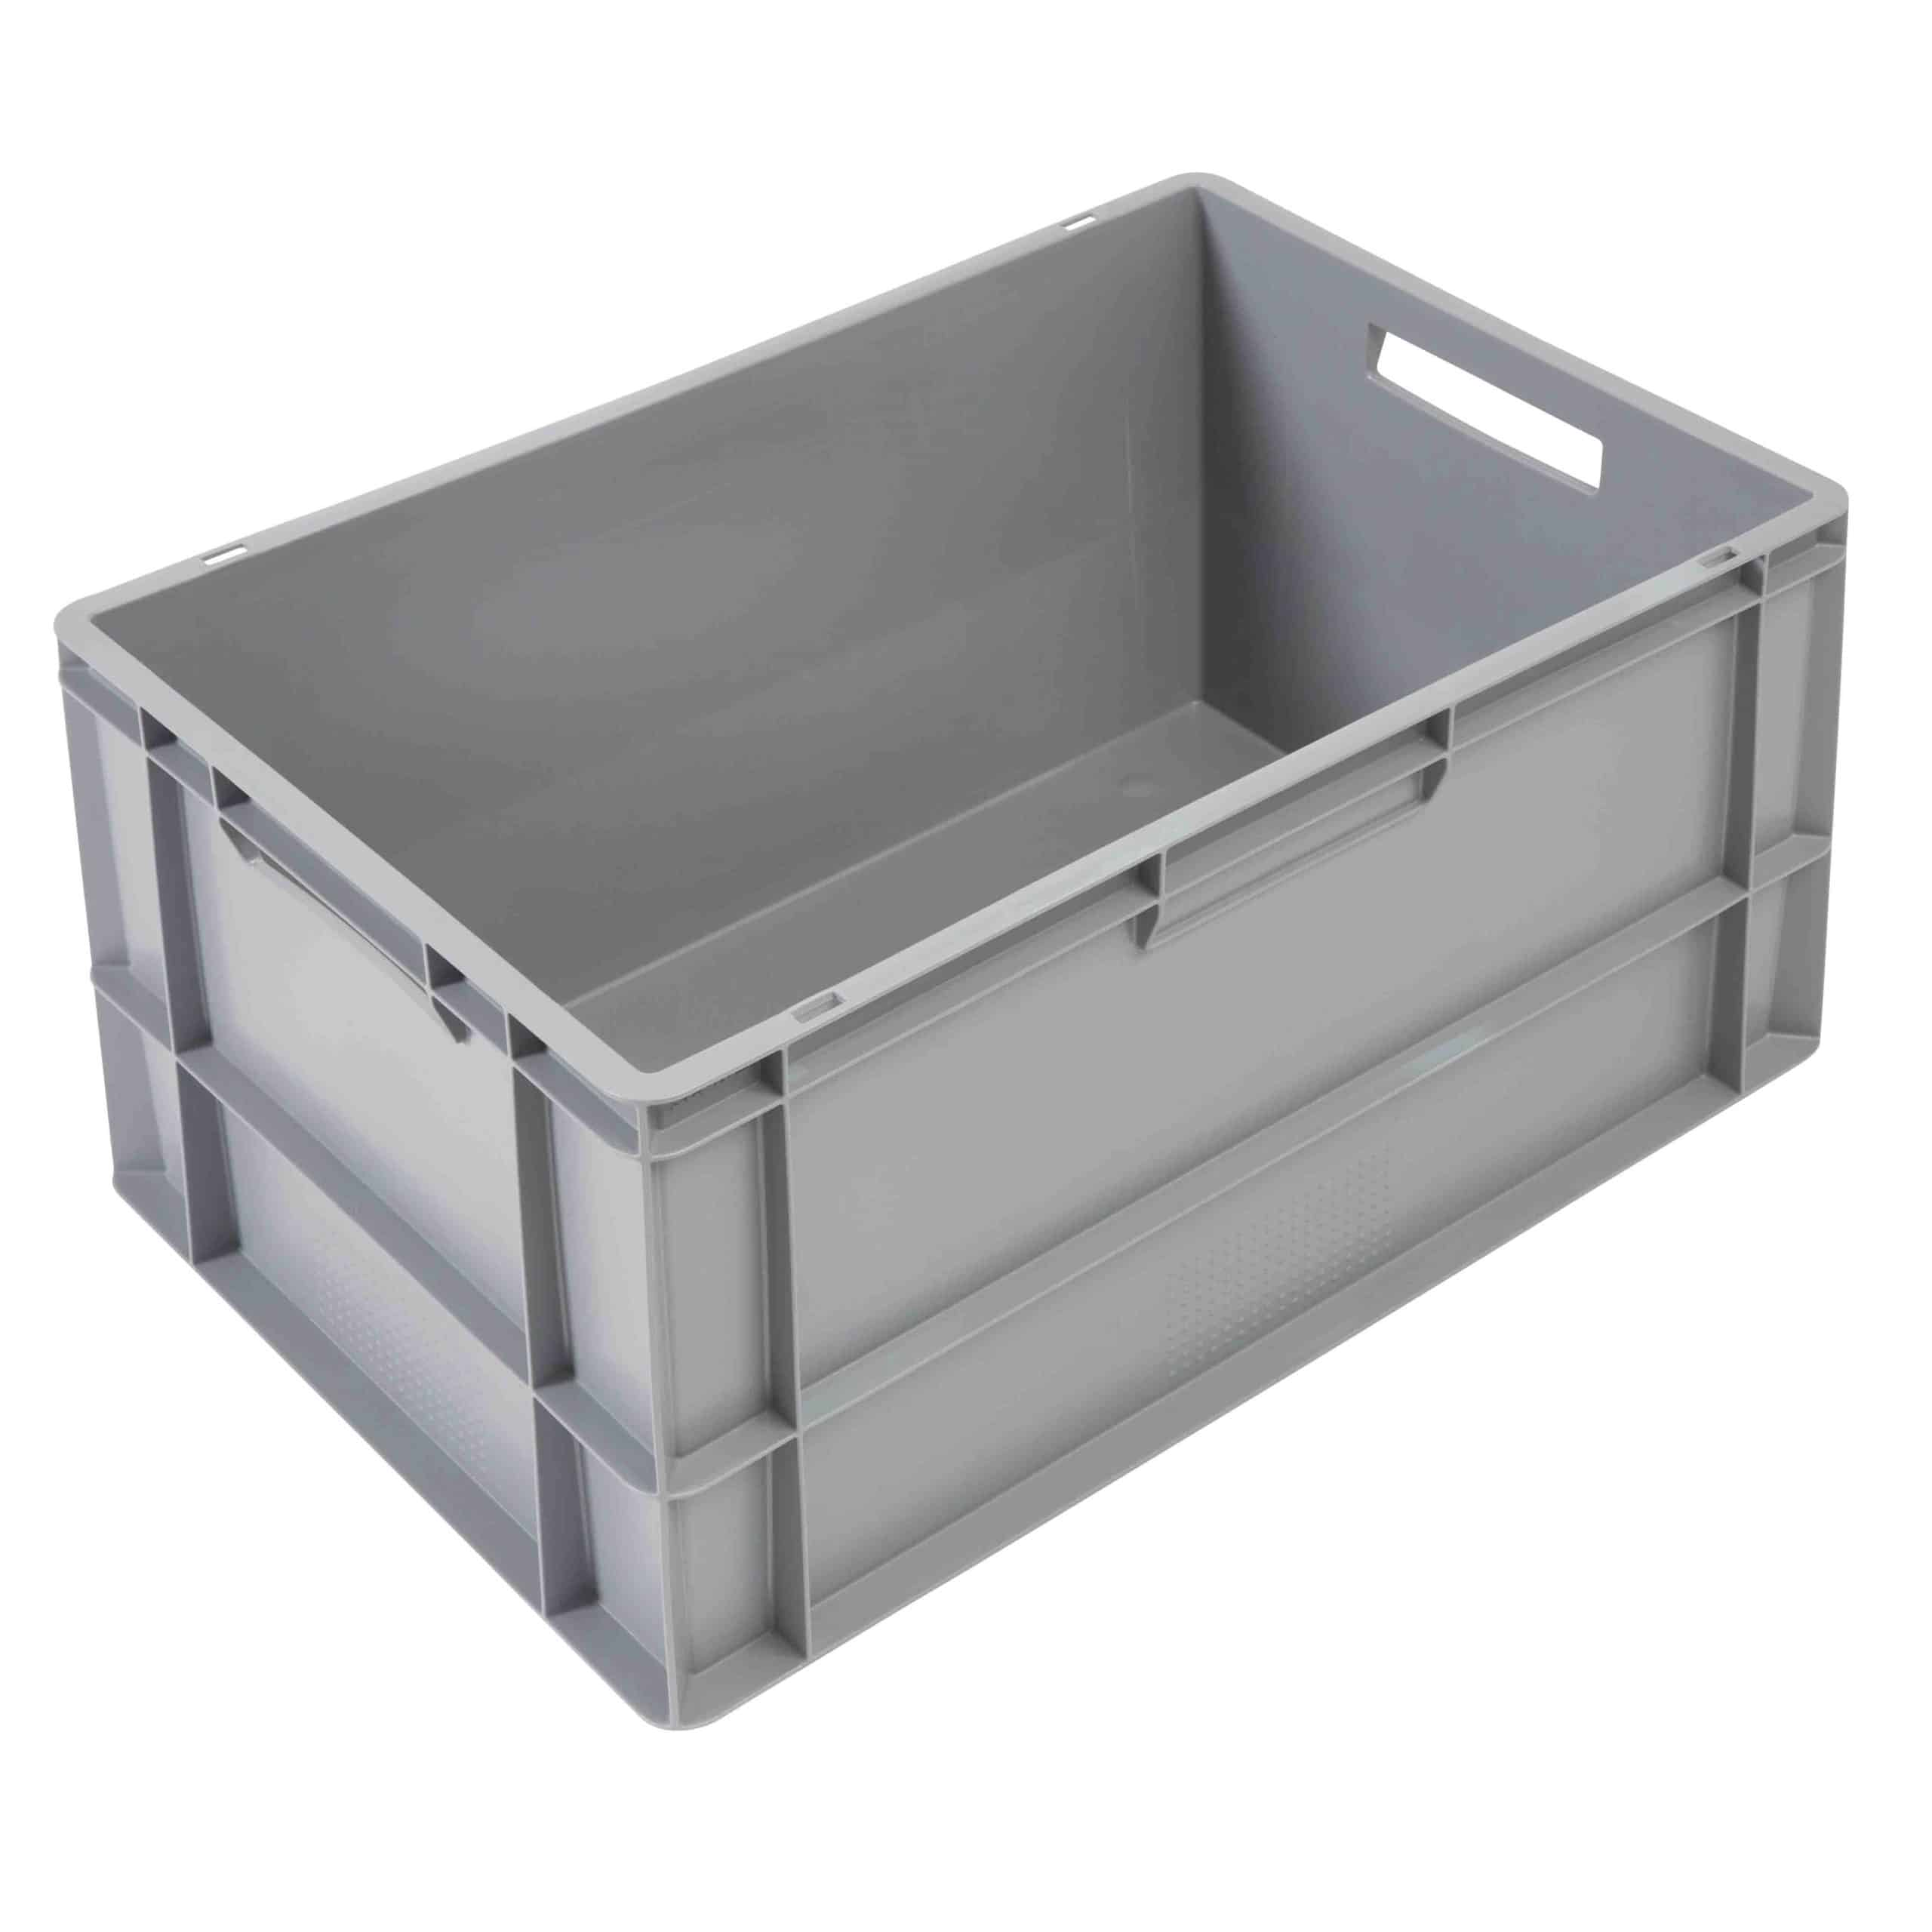 60 Litre Euro Containers